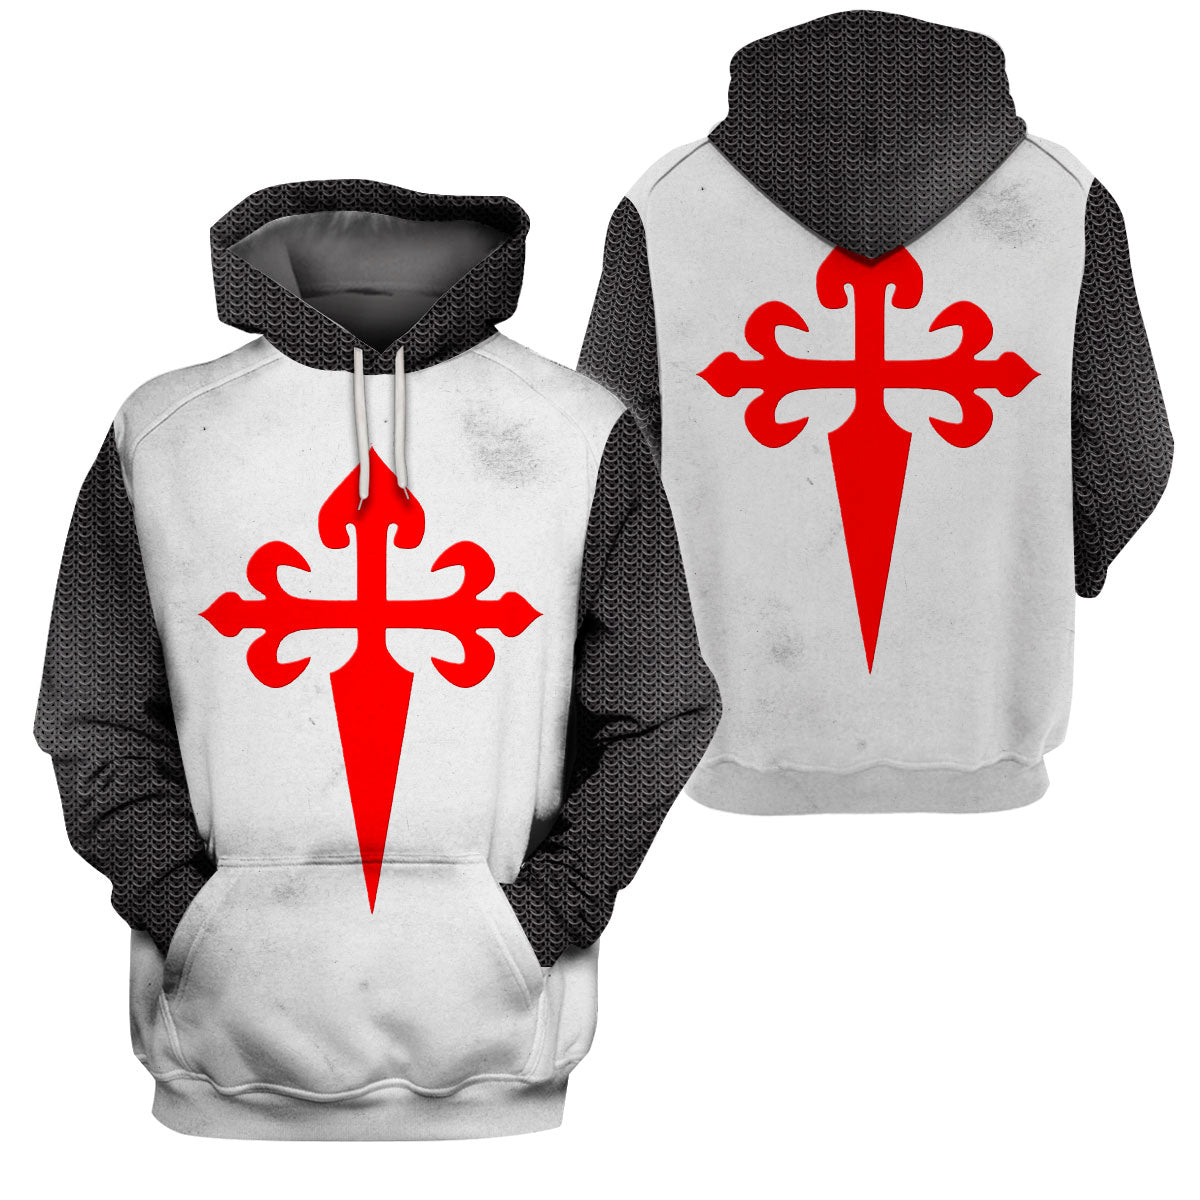 3D Printed Knight Templar Apparel - Of St James - GnWarriors Clothing